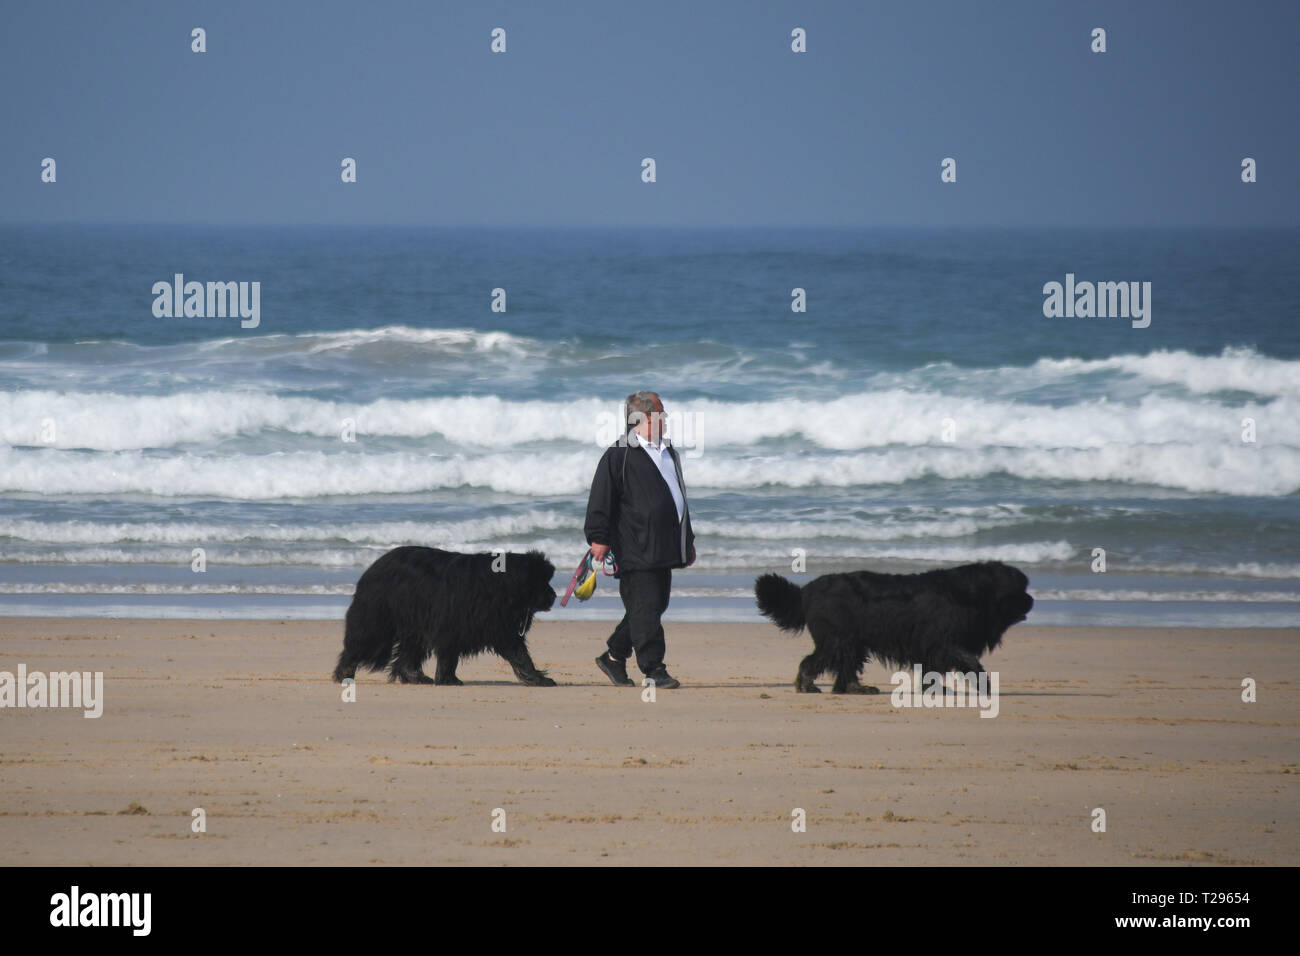 Perranporth, Cornwall,UK. 31st March 2019. UK Weather. It was hot and sunny for the first day of British Summertime on the beach at Perranporth, with horse riders, dog walkers and families out making the most of the hot weather on mothers day. Credit: Simon Maycock/Alamy Live News Stock Photo